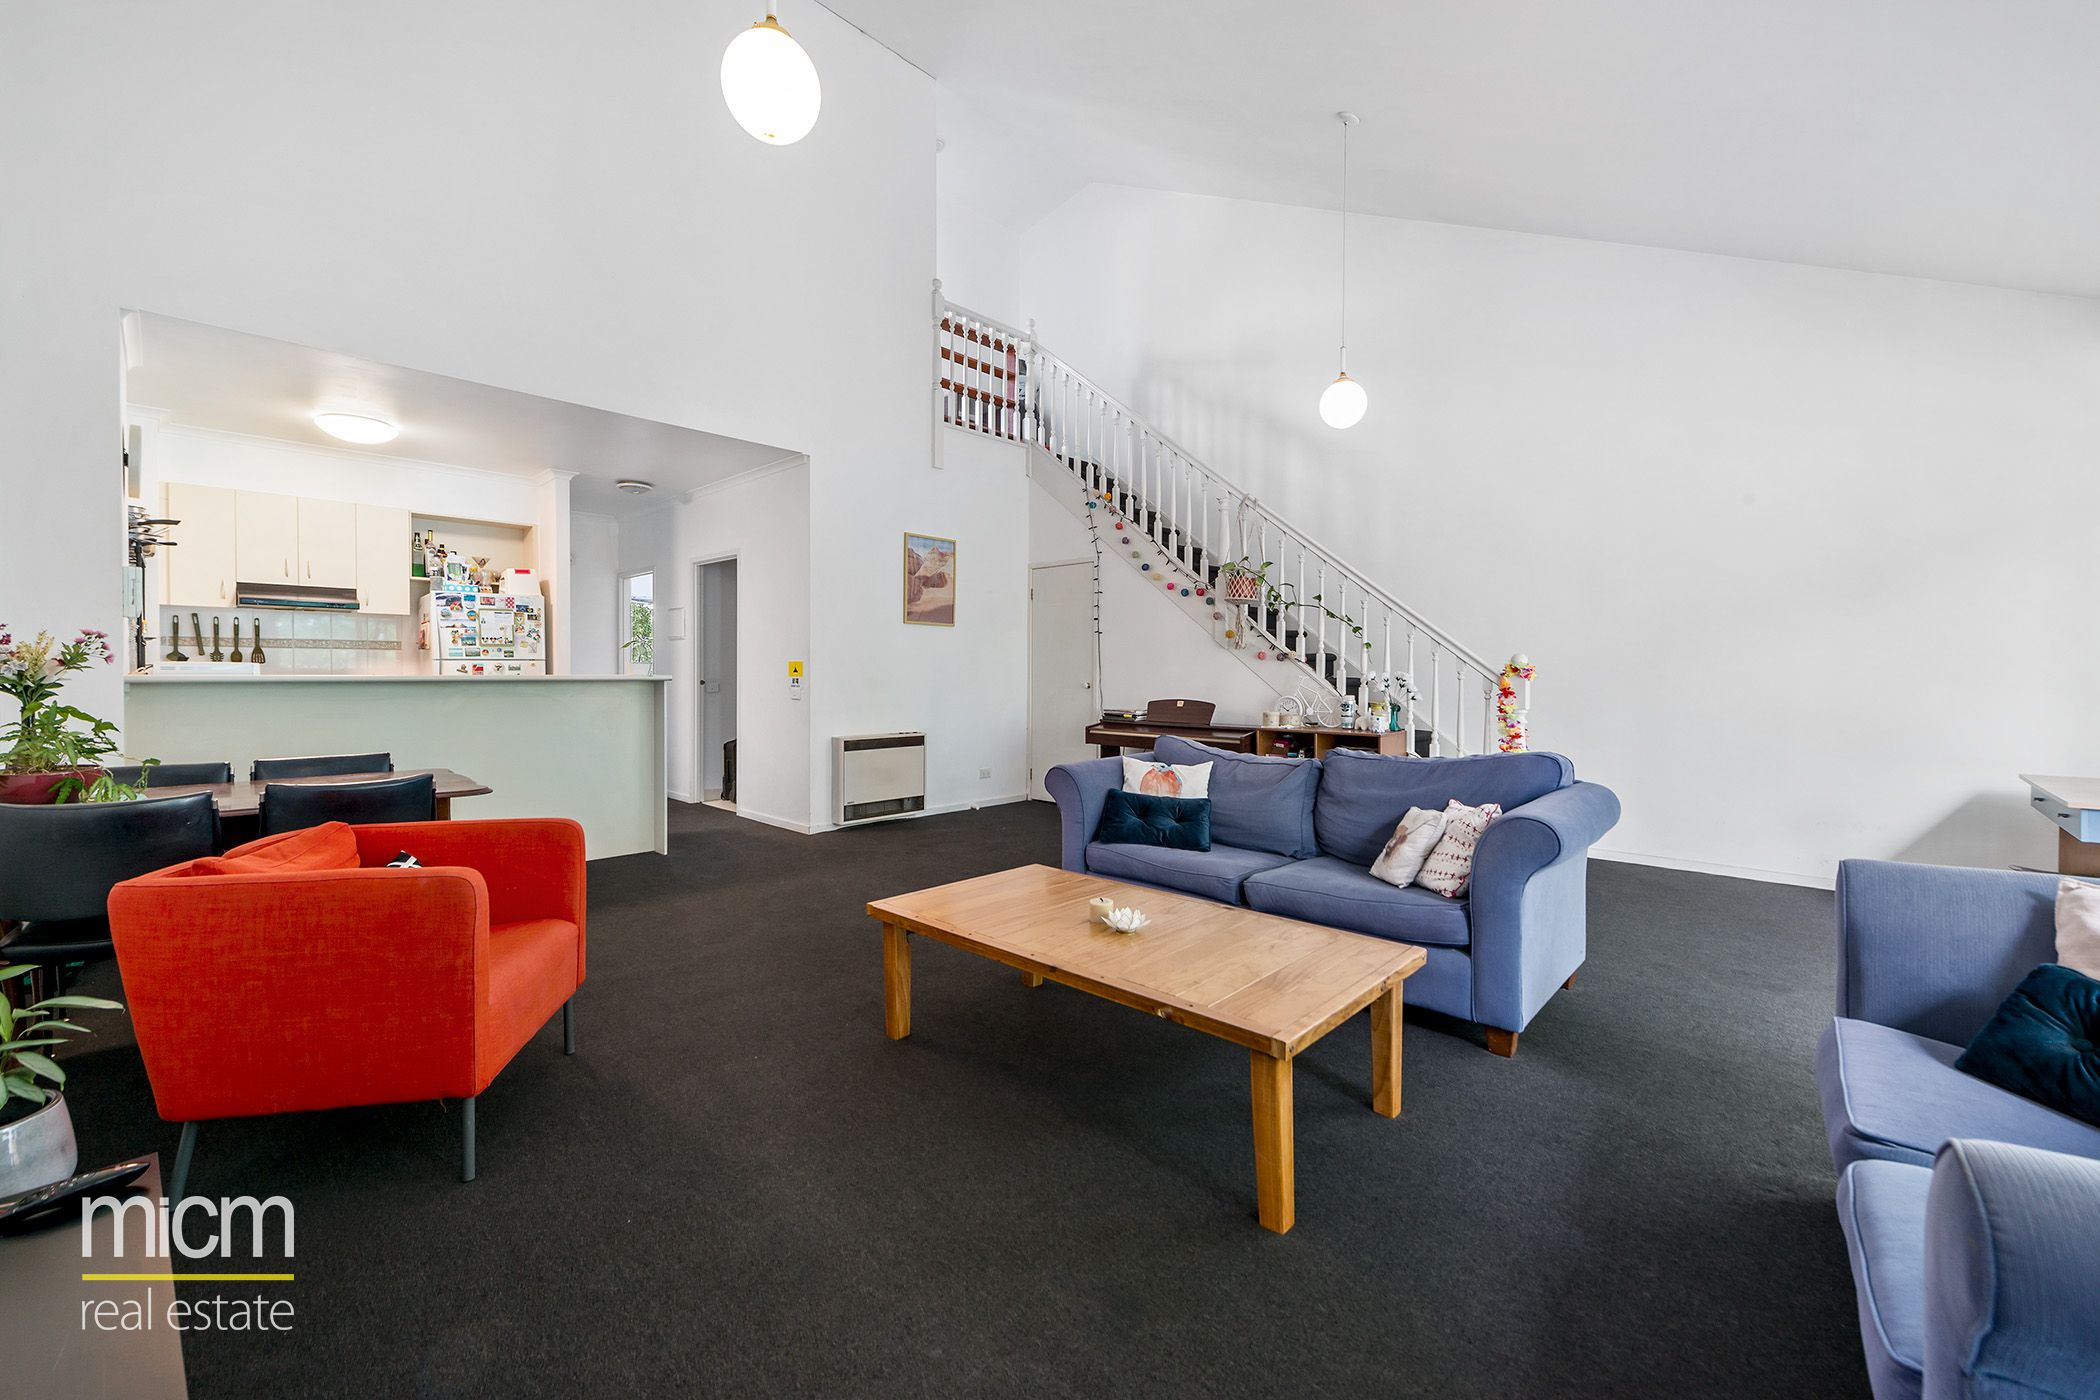 Low-Rise Luxury Reveals Spacious Style